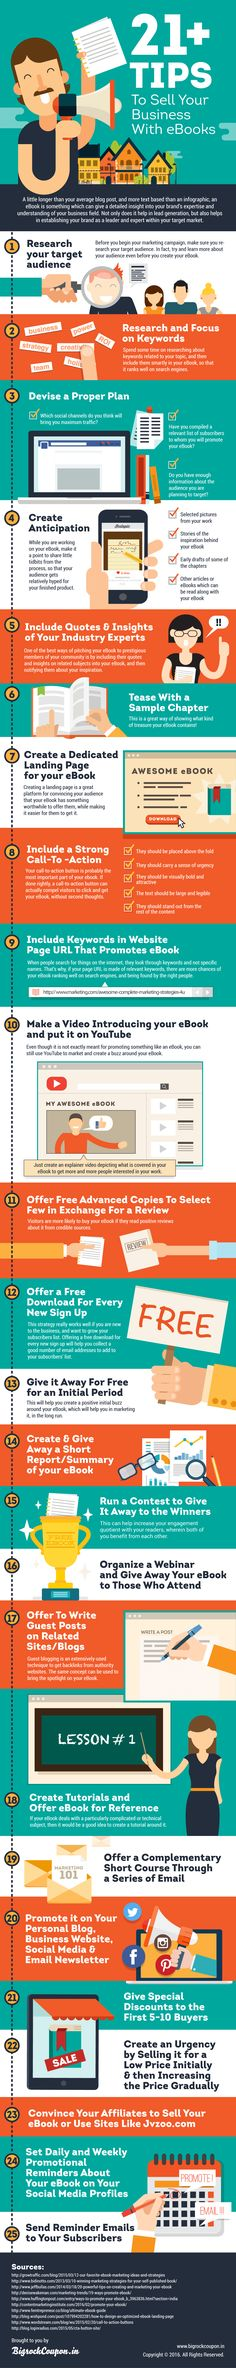 21 Ways to Use eBooks to Drive More Sales